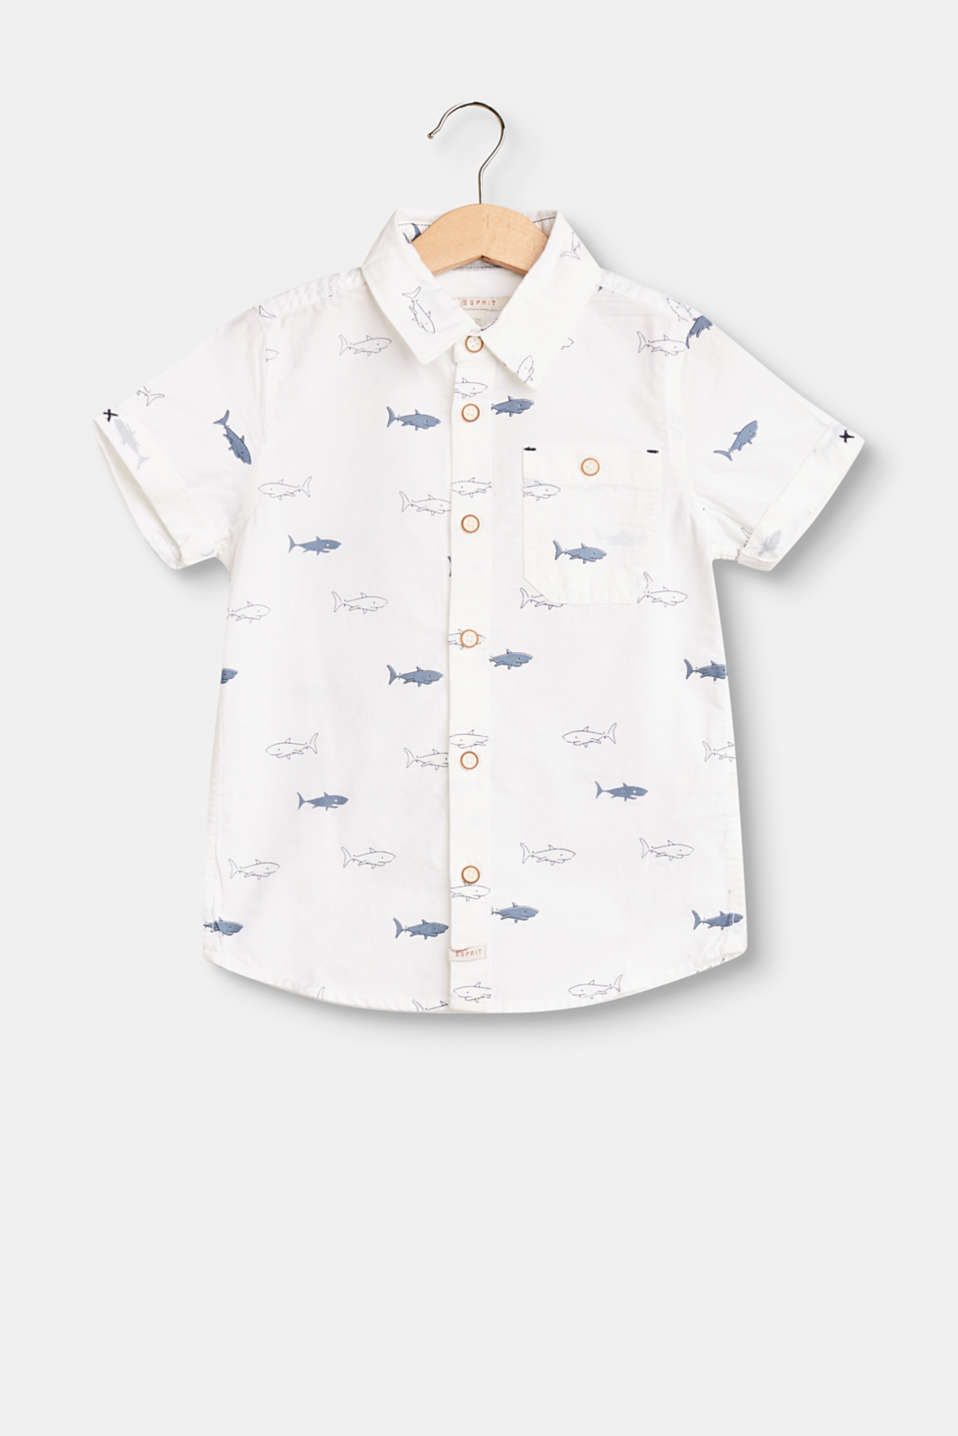 Esprit - Short sleeve shirt with a shark print, 100% cotton